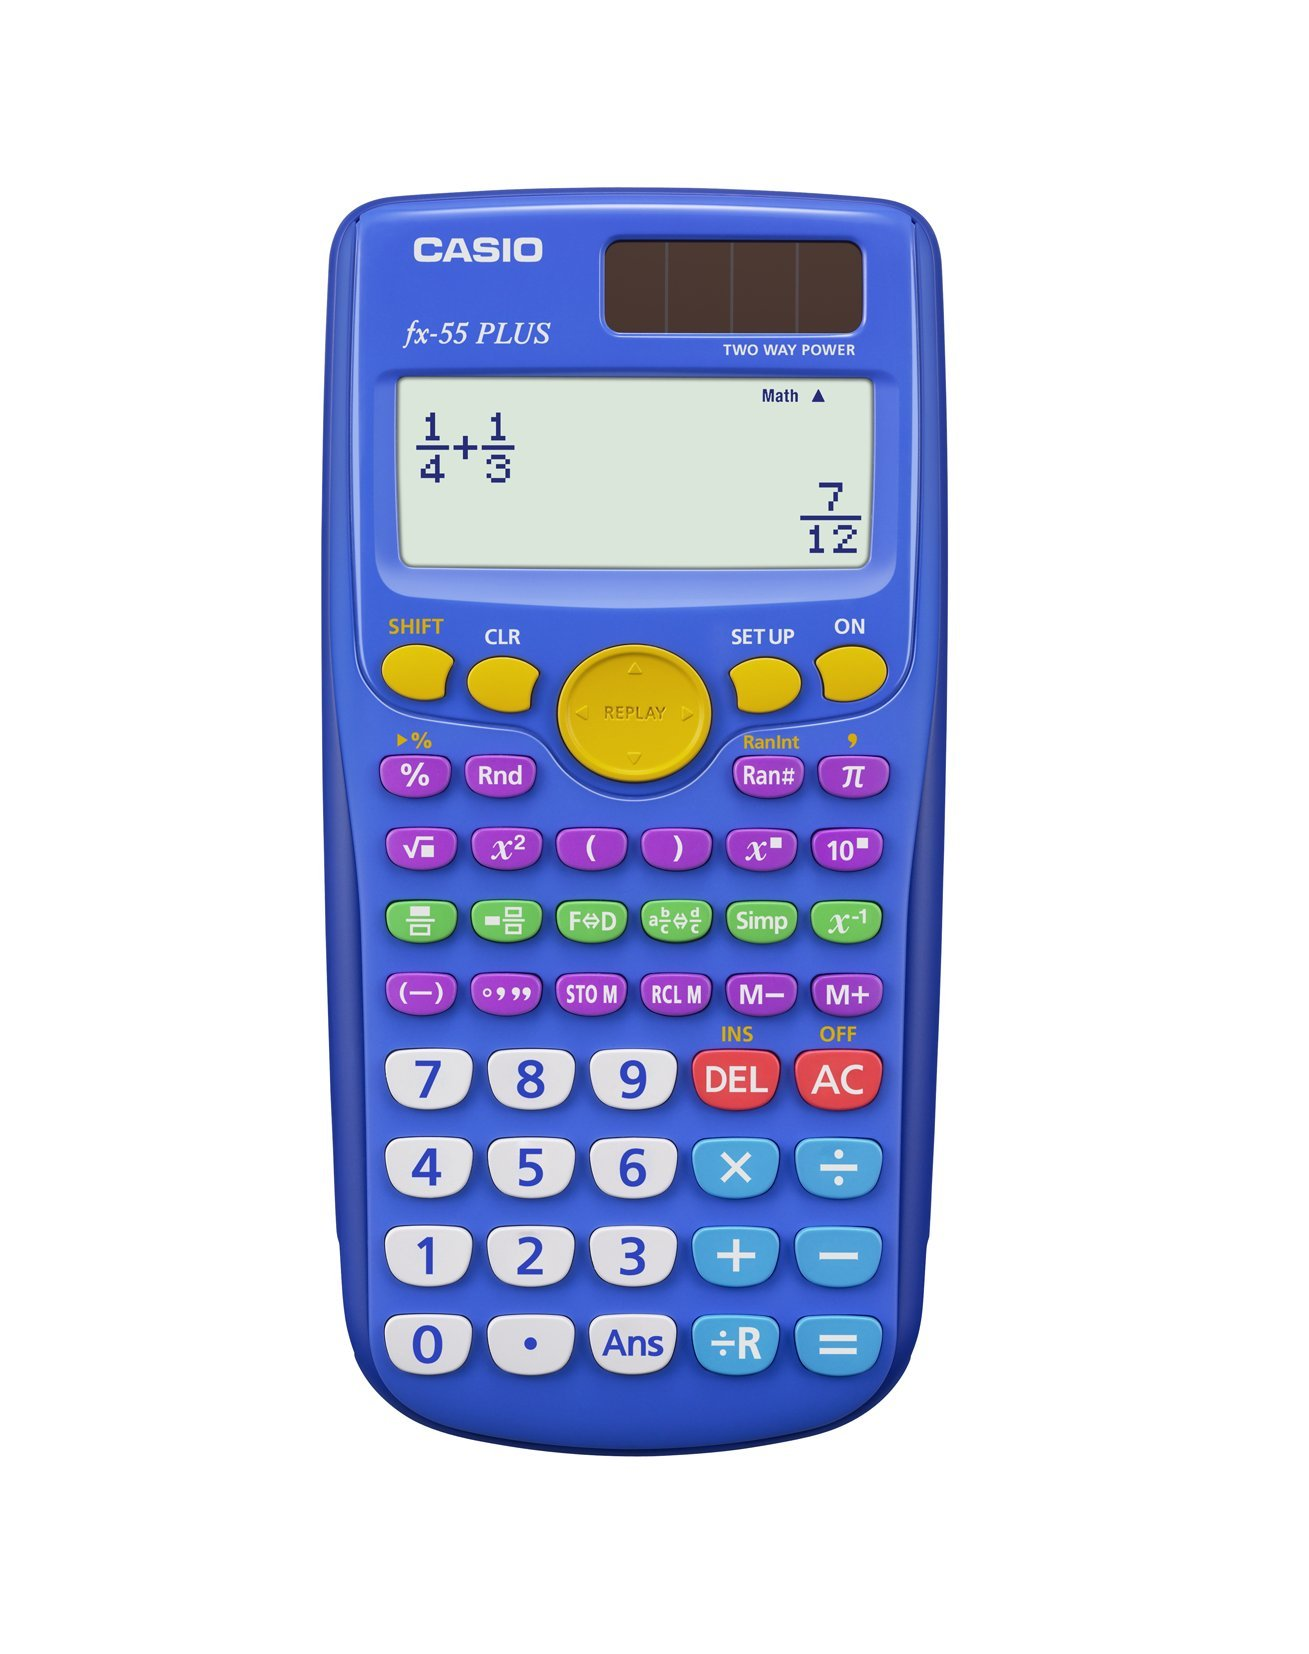 Casio fx-55 PLUS Elementary/Middle School Fraction Calculator, Pack of 10 (Teacher Pack)